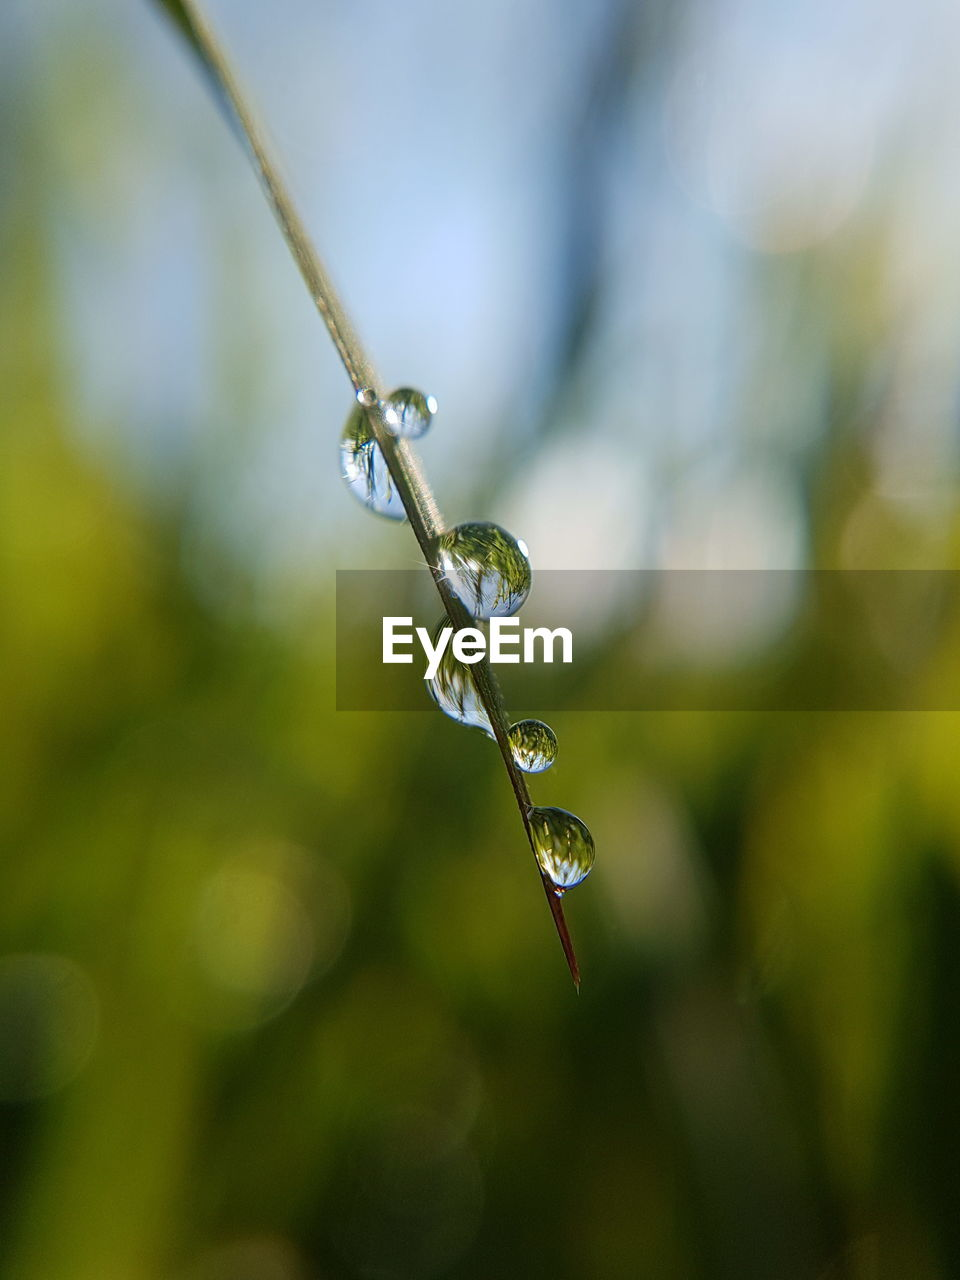 close-up, drop, plant, focus on foreground, growth, water, wet, no people, day, nature, fragility, beauty in nature, vulnerability, selective focus, green color, freshness, leaf, outdoors, plant part, purity, dew, raindrop, rainy season, blade of grass